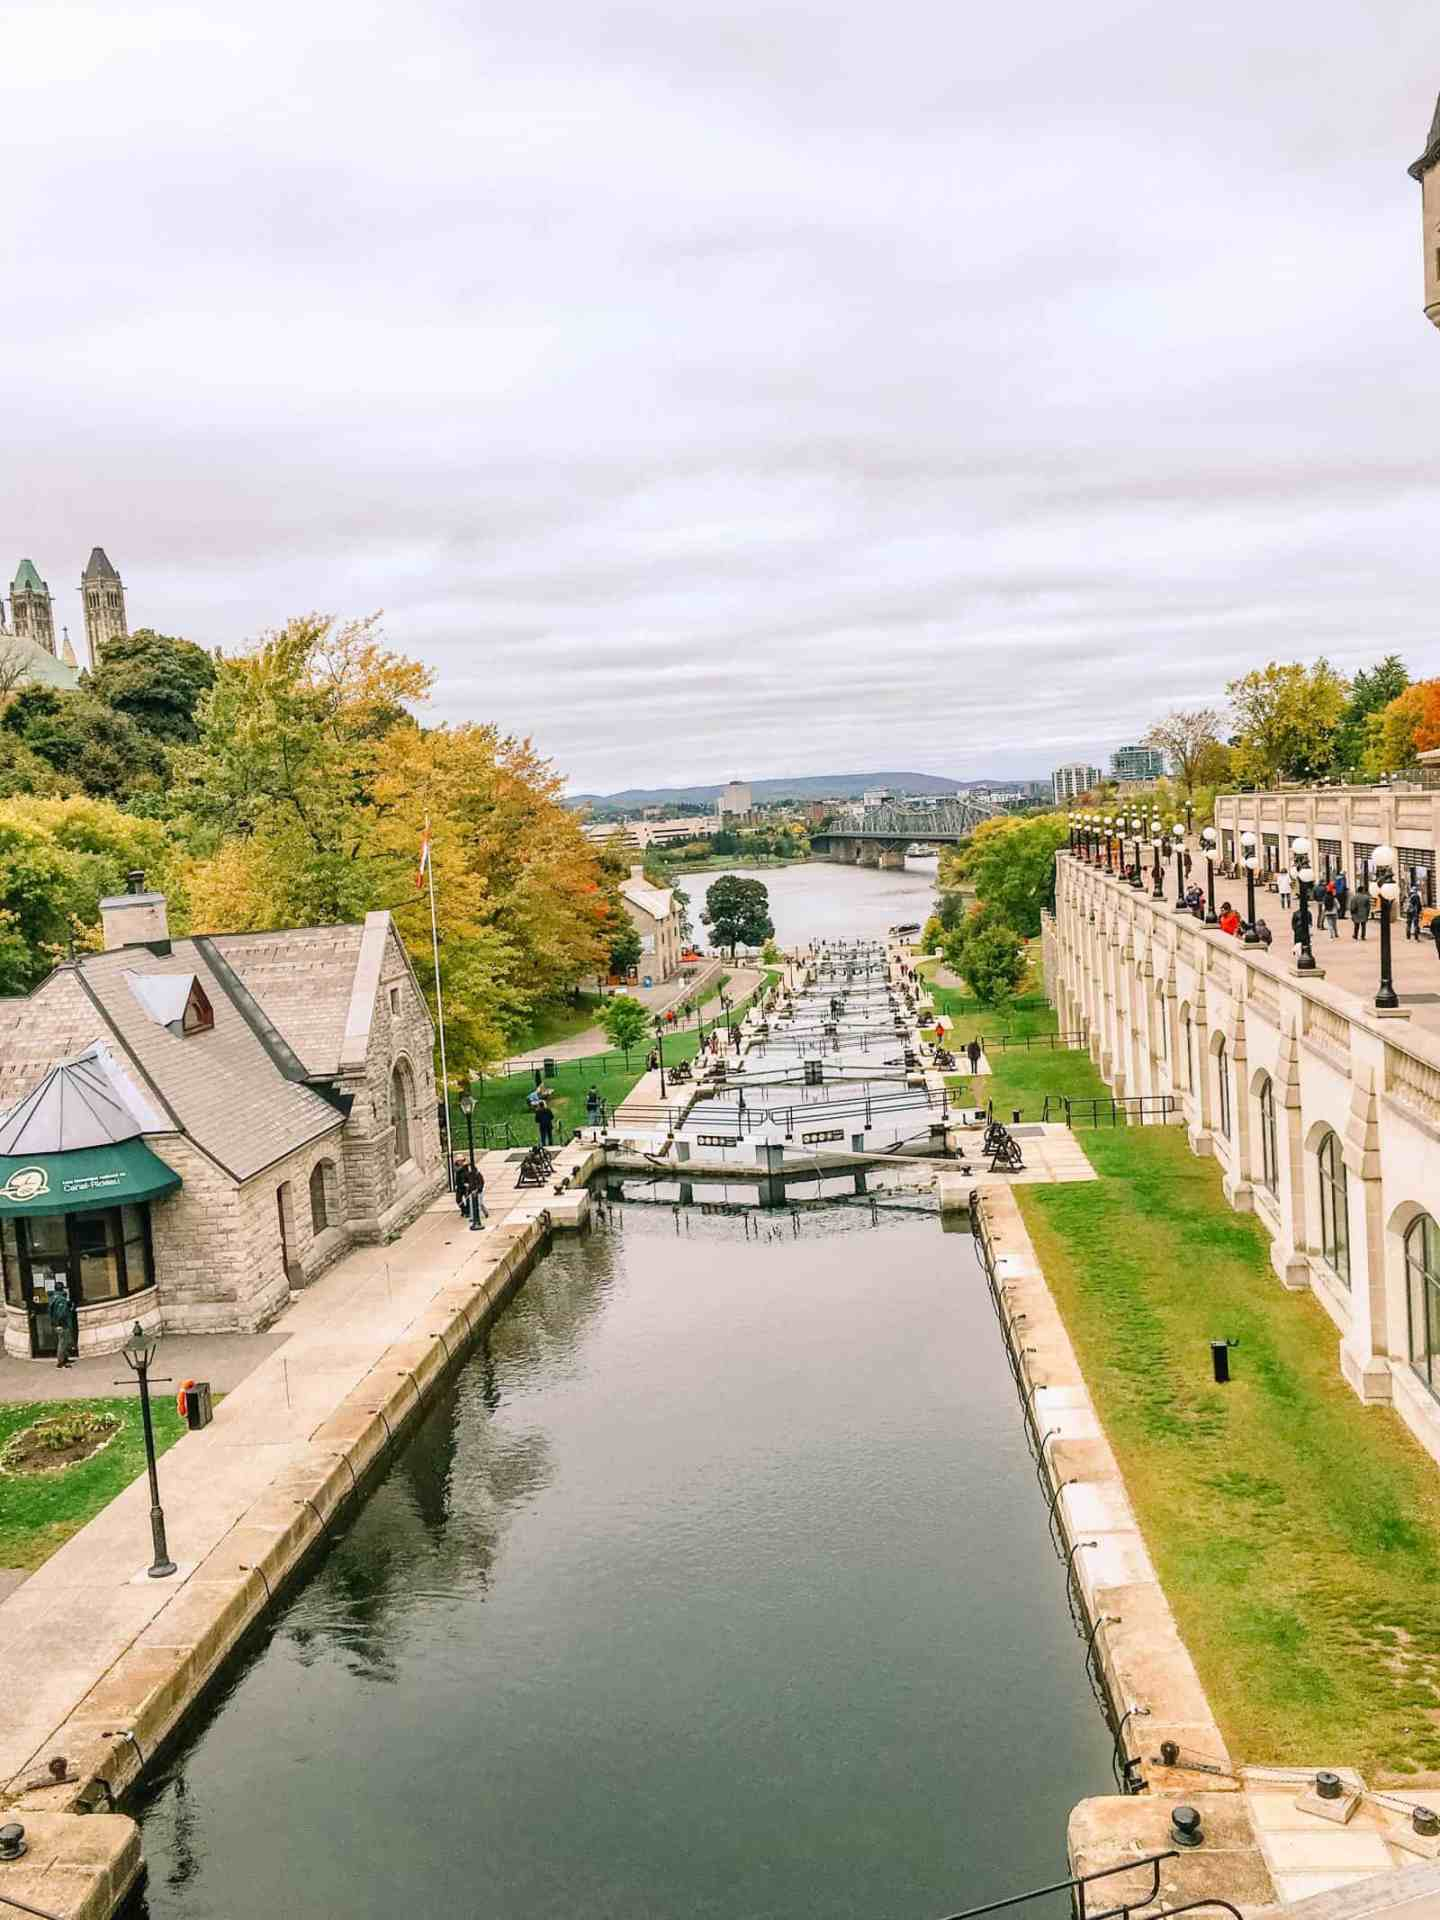 Ottawa travel, Rideau canal in Ottawa The locks allow for boats to travel from the lake through the city of Ottawa.